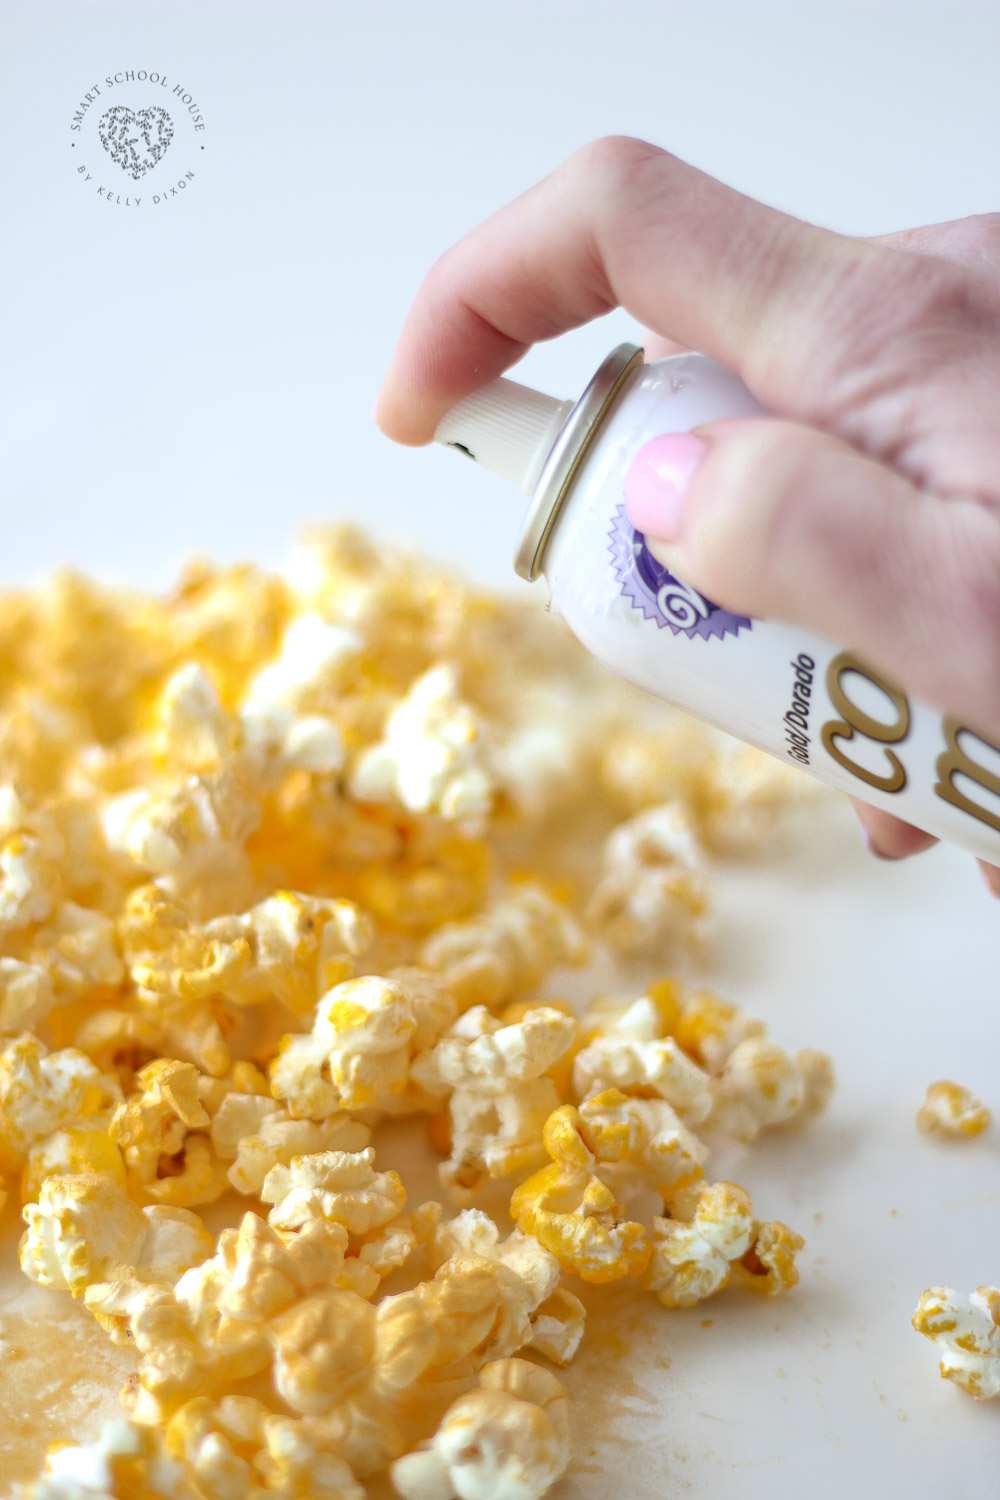 Use gold color mist to make gold popcorn! #Popcorn